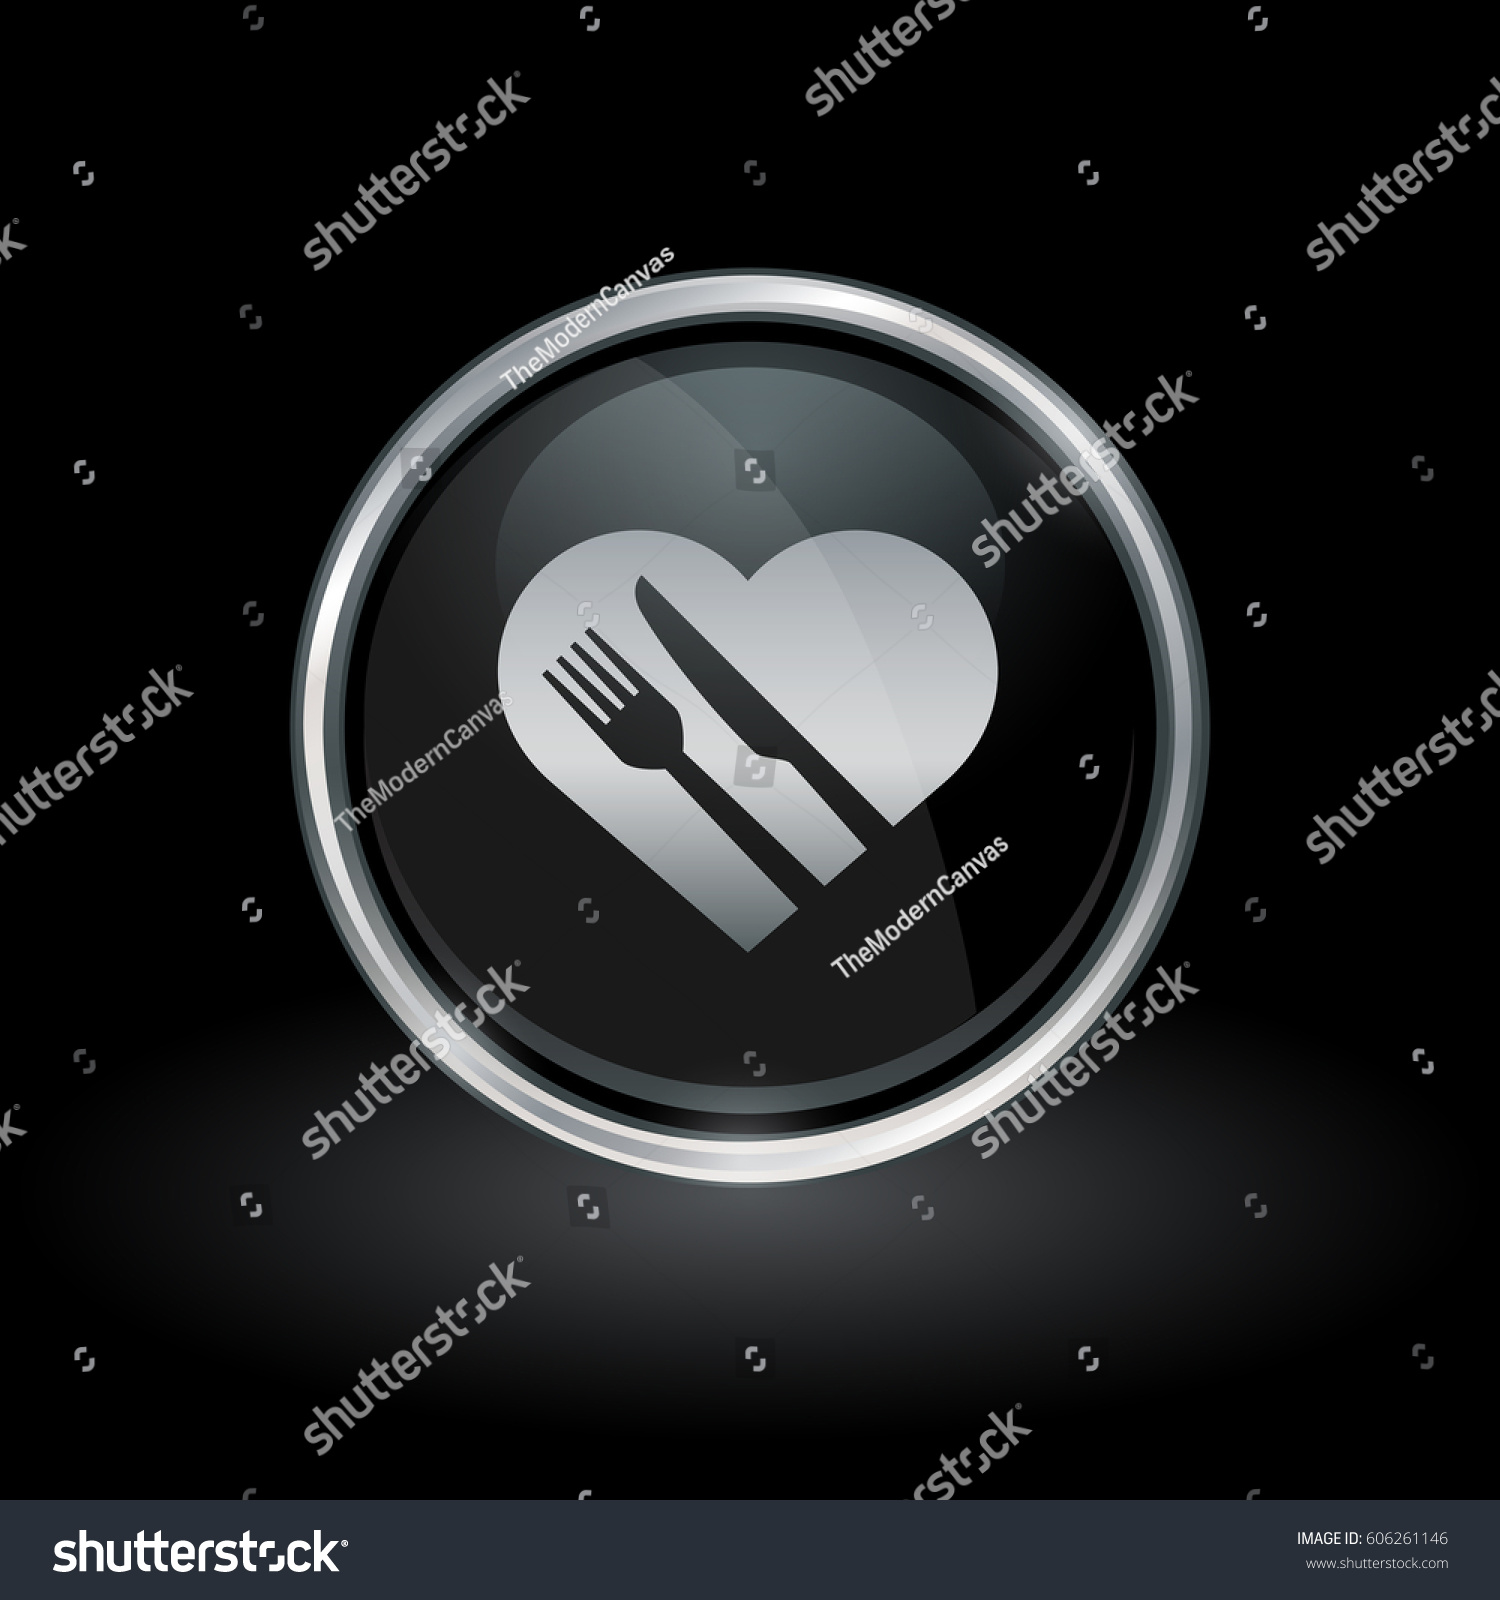 Healthy diet symbol heart knife fork stock vector 606261146 healthy diet symbol with heart knife and fork icon inside round chrome silver and black button biocorpaavc